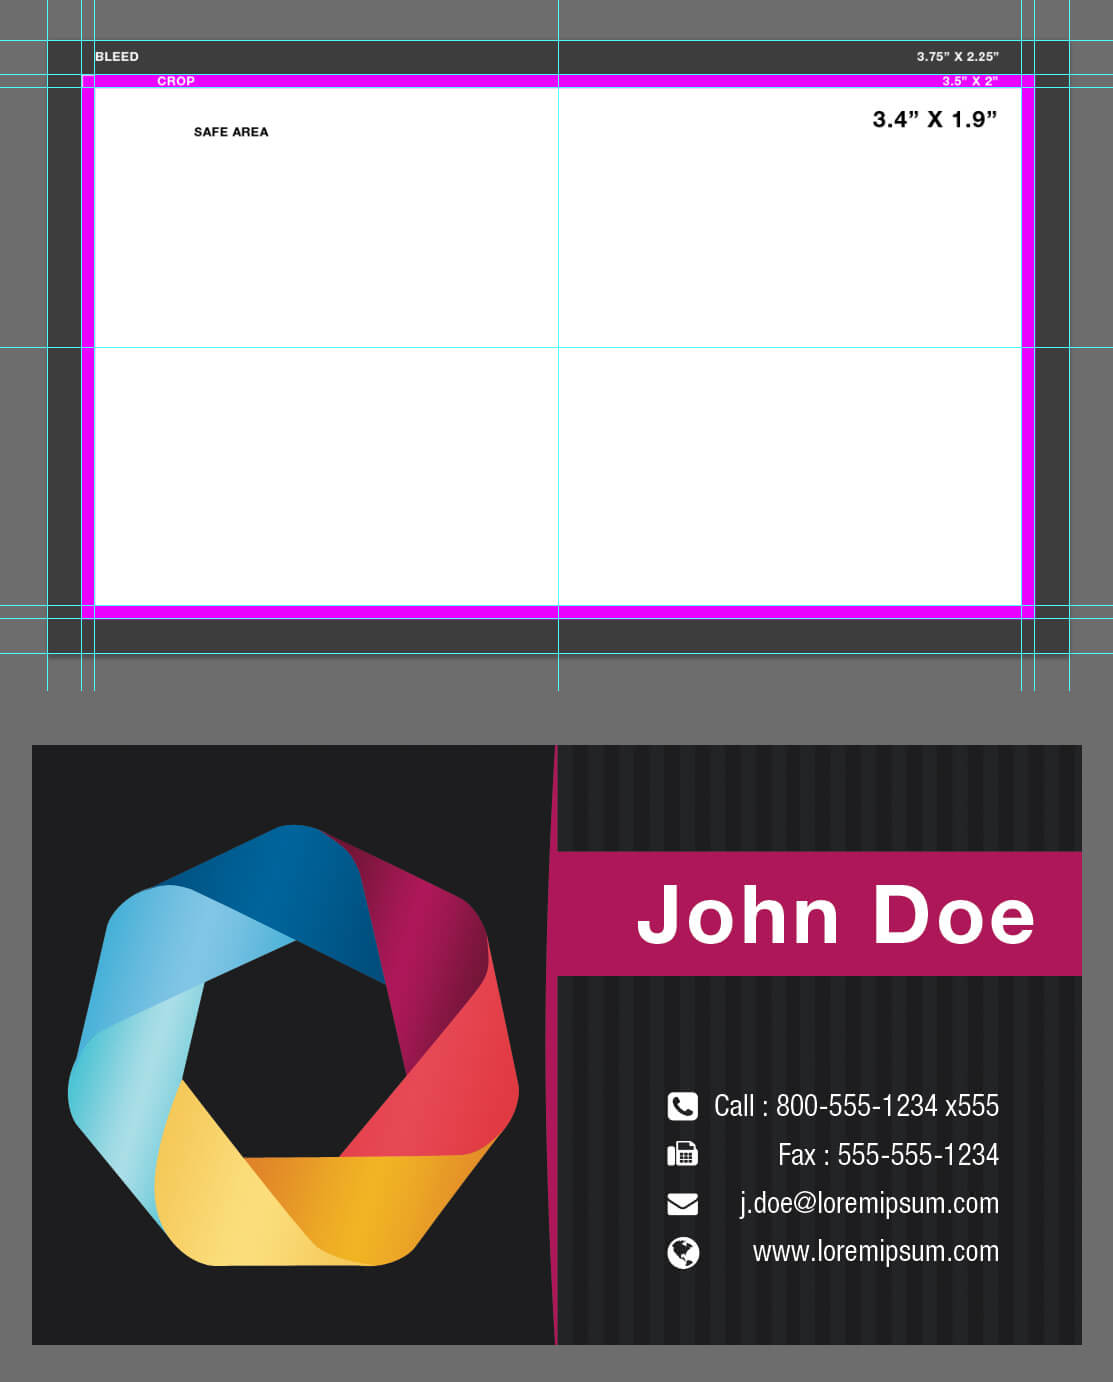 Blank Business Card Template Psdxxdigipxx On Deviantart With Regard To Blank Business Card Template Psd